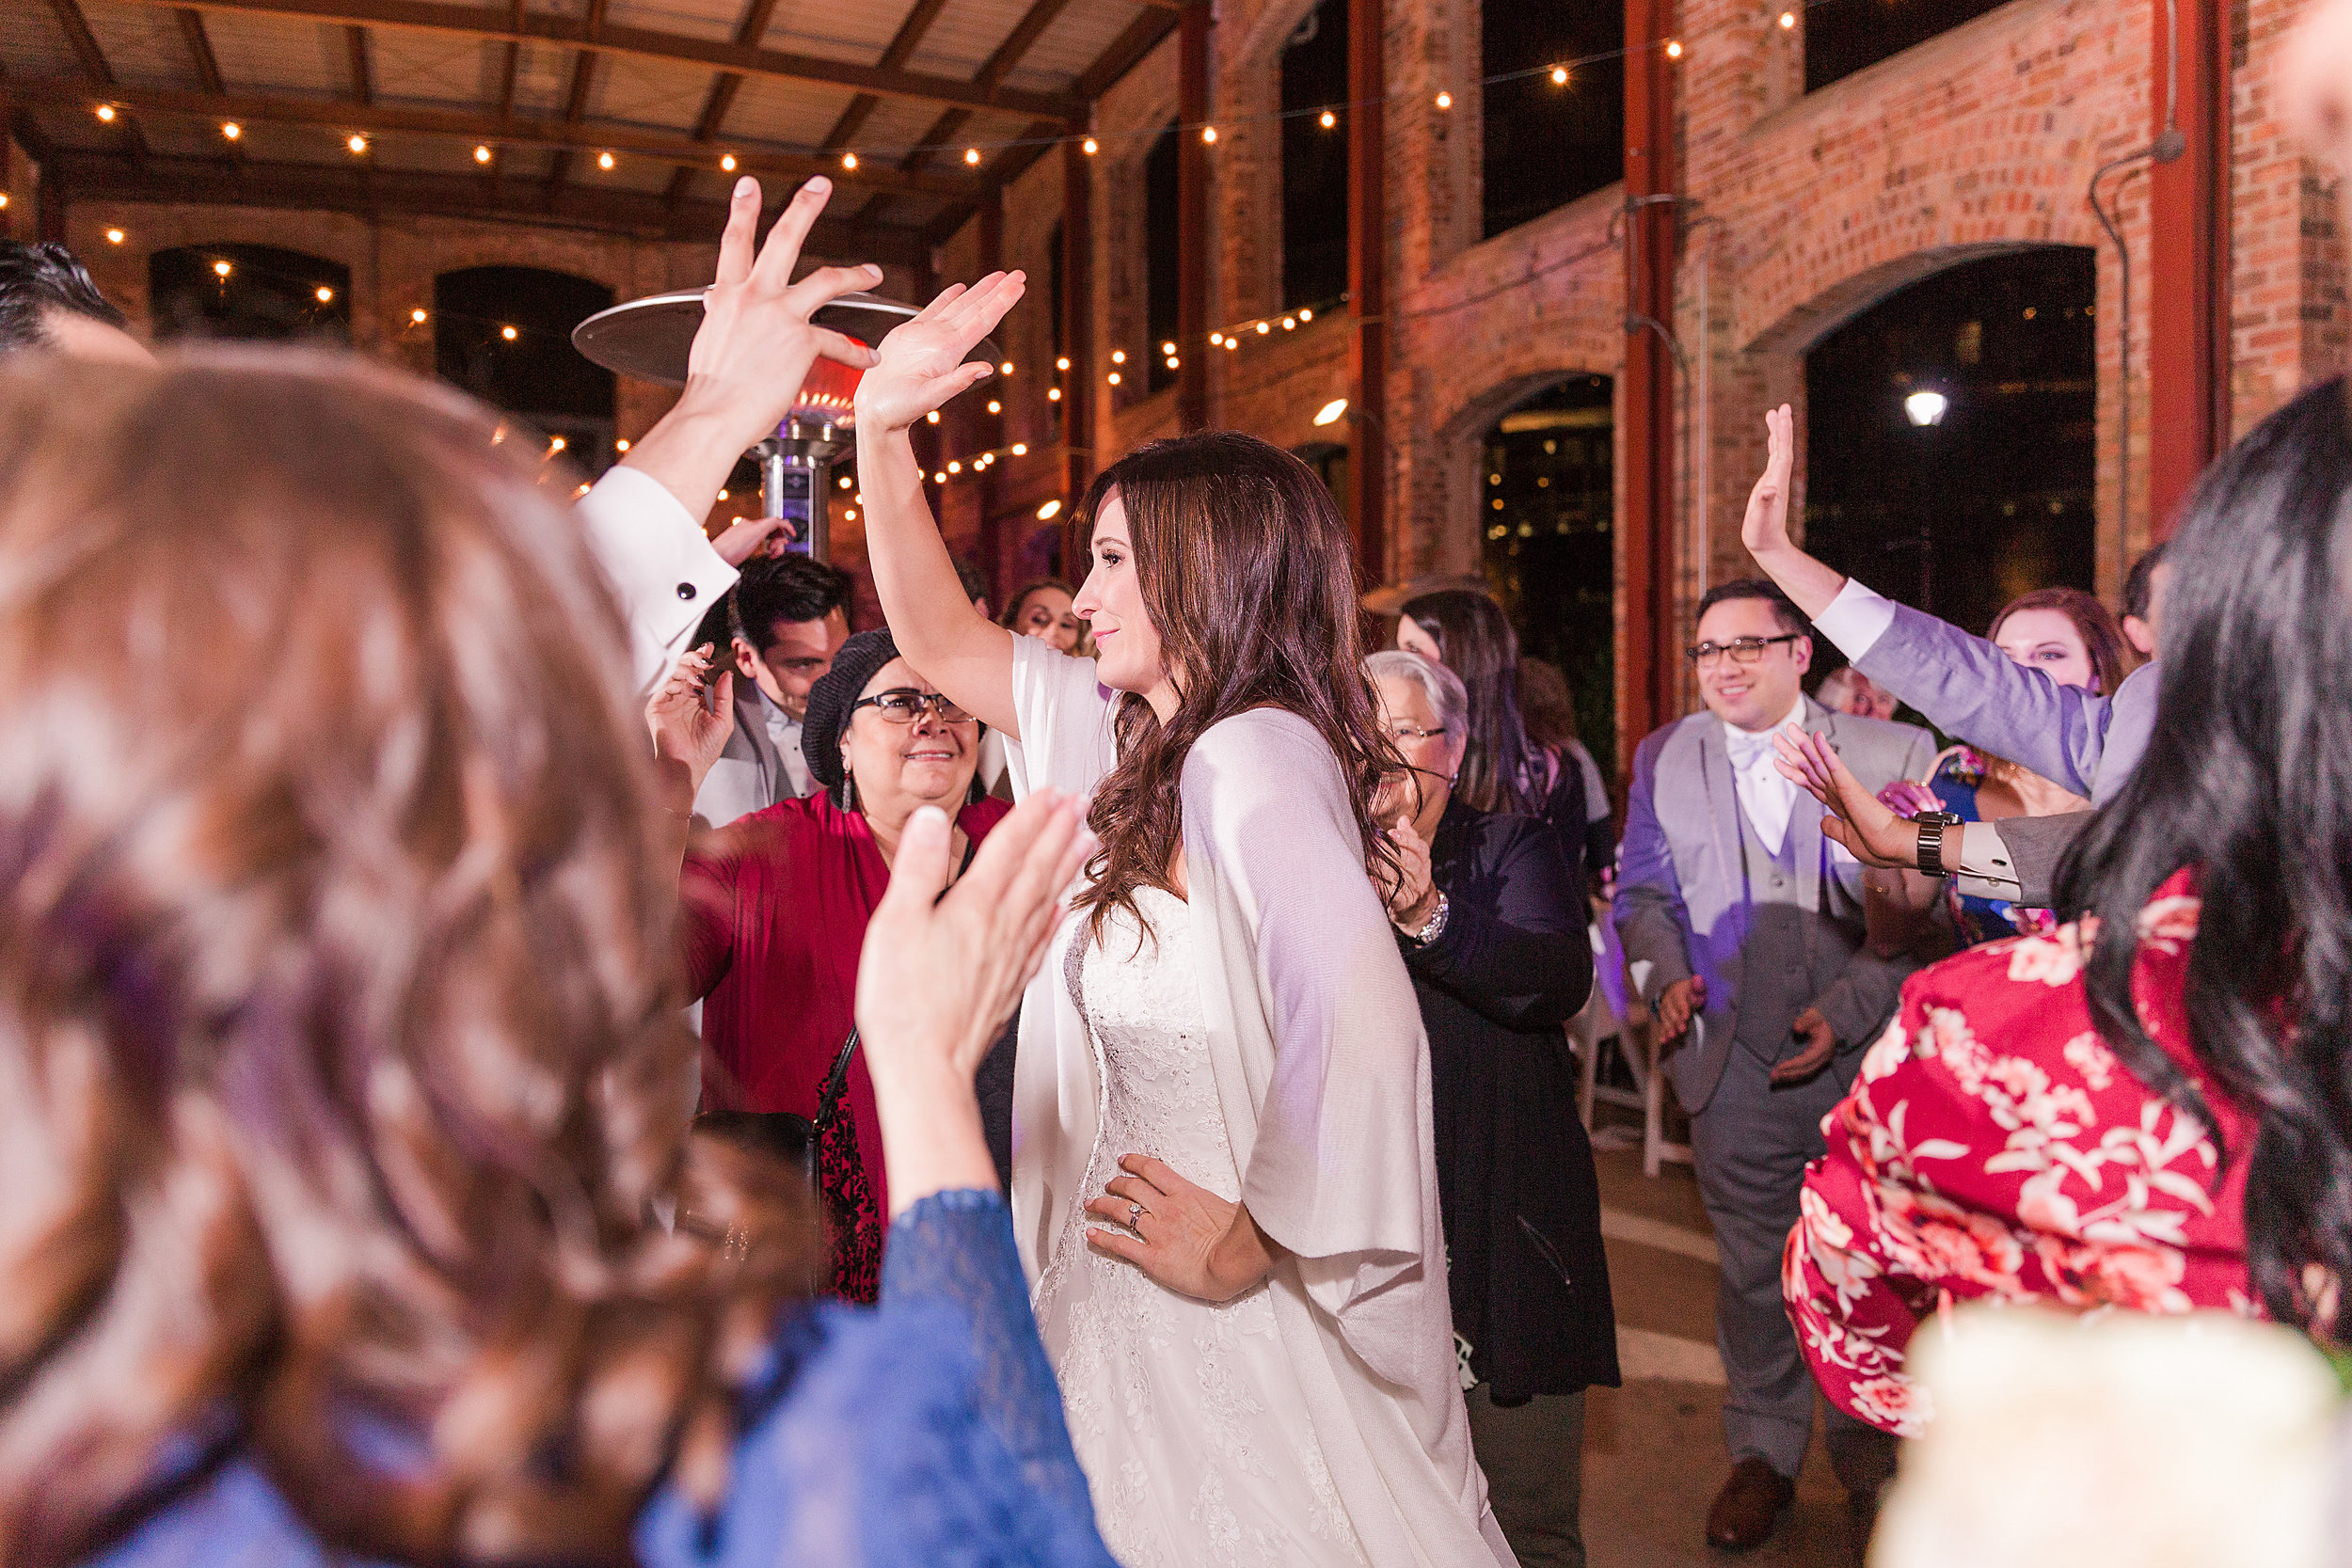 Wedding-DJ-Greenville-SC-Larkins-Wyche-Pavilion-251.jpg